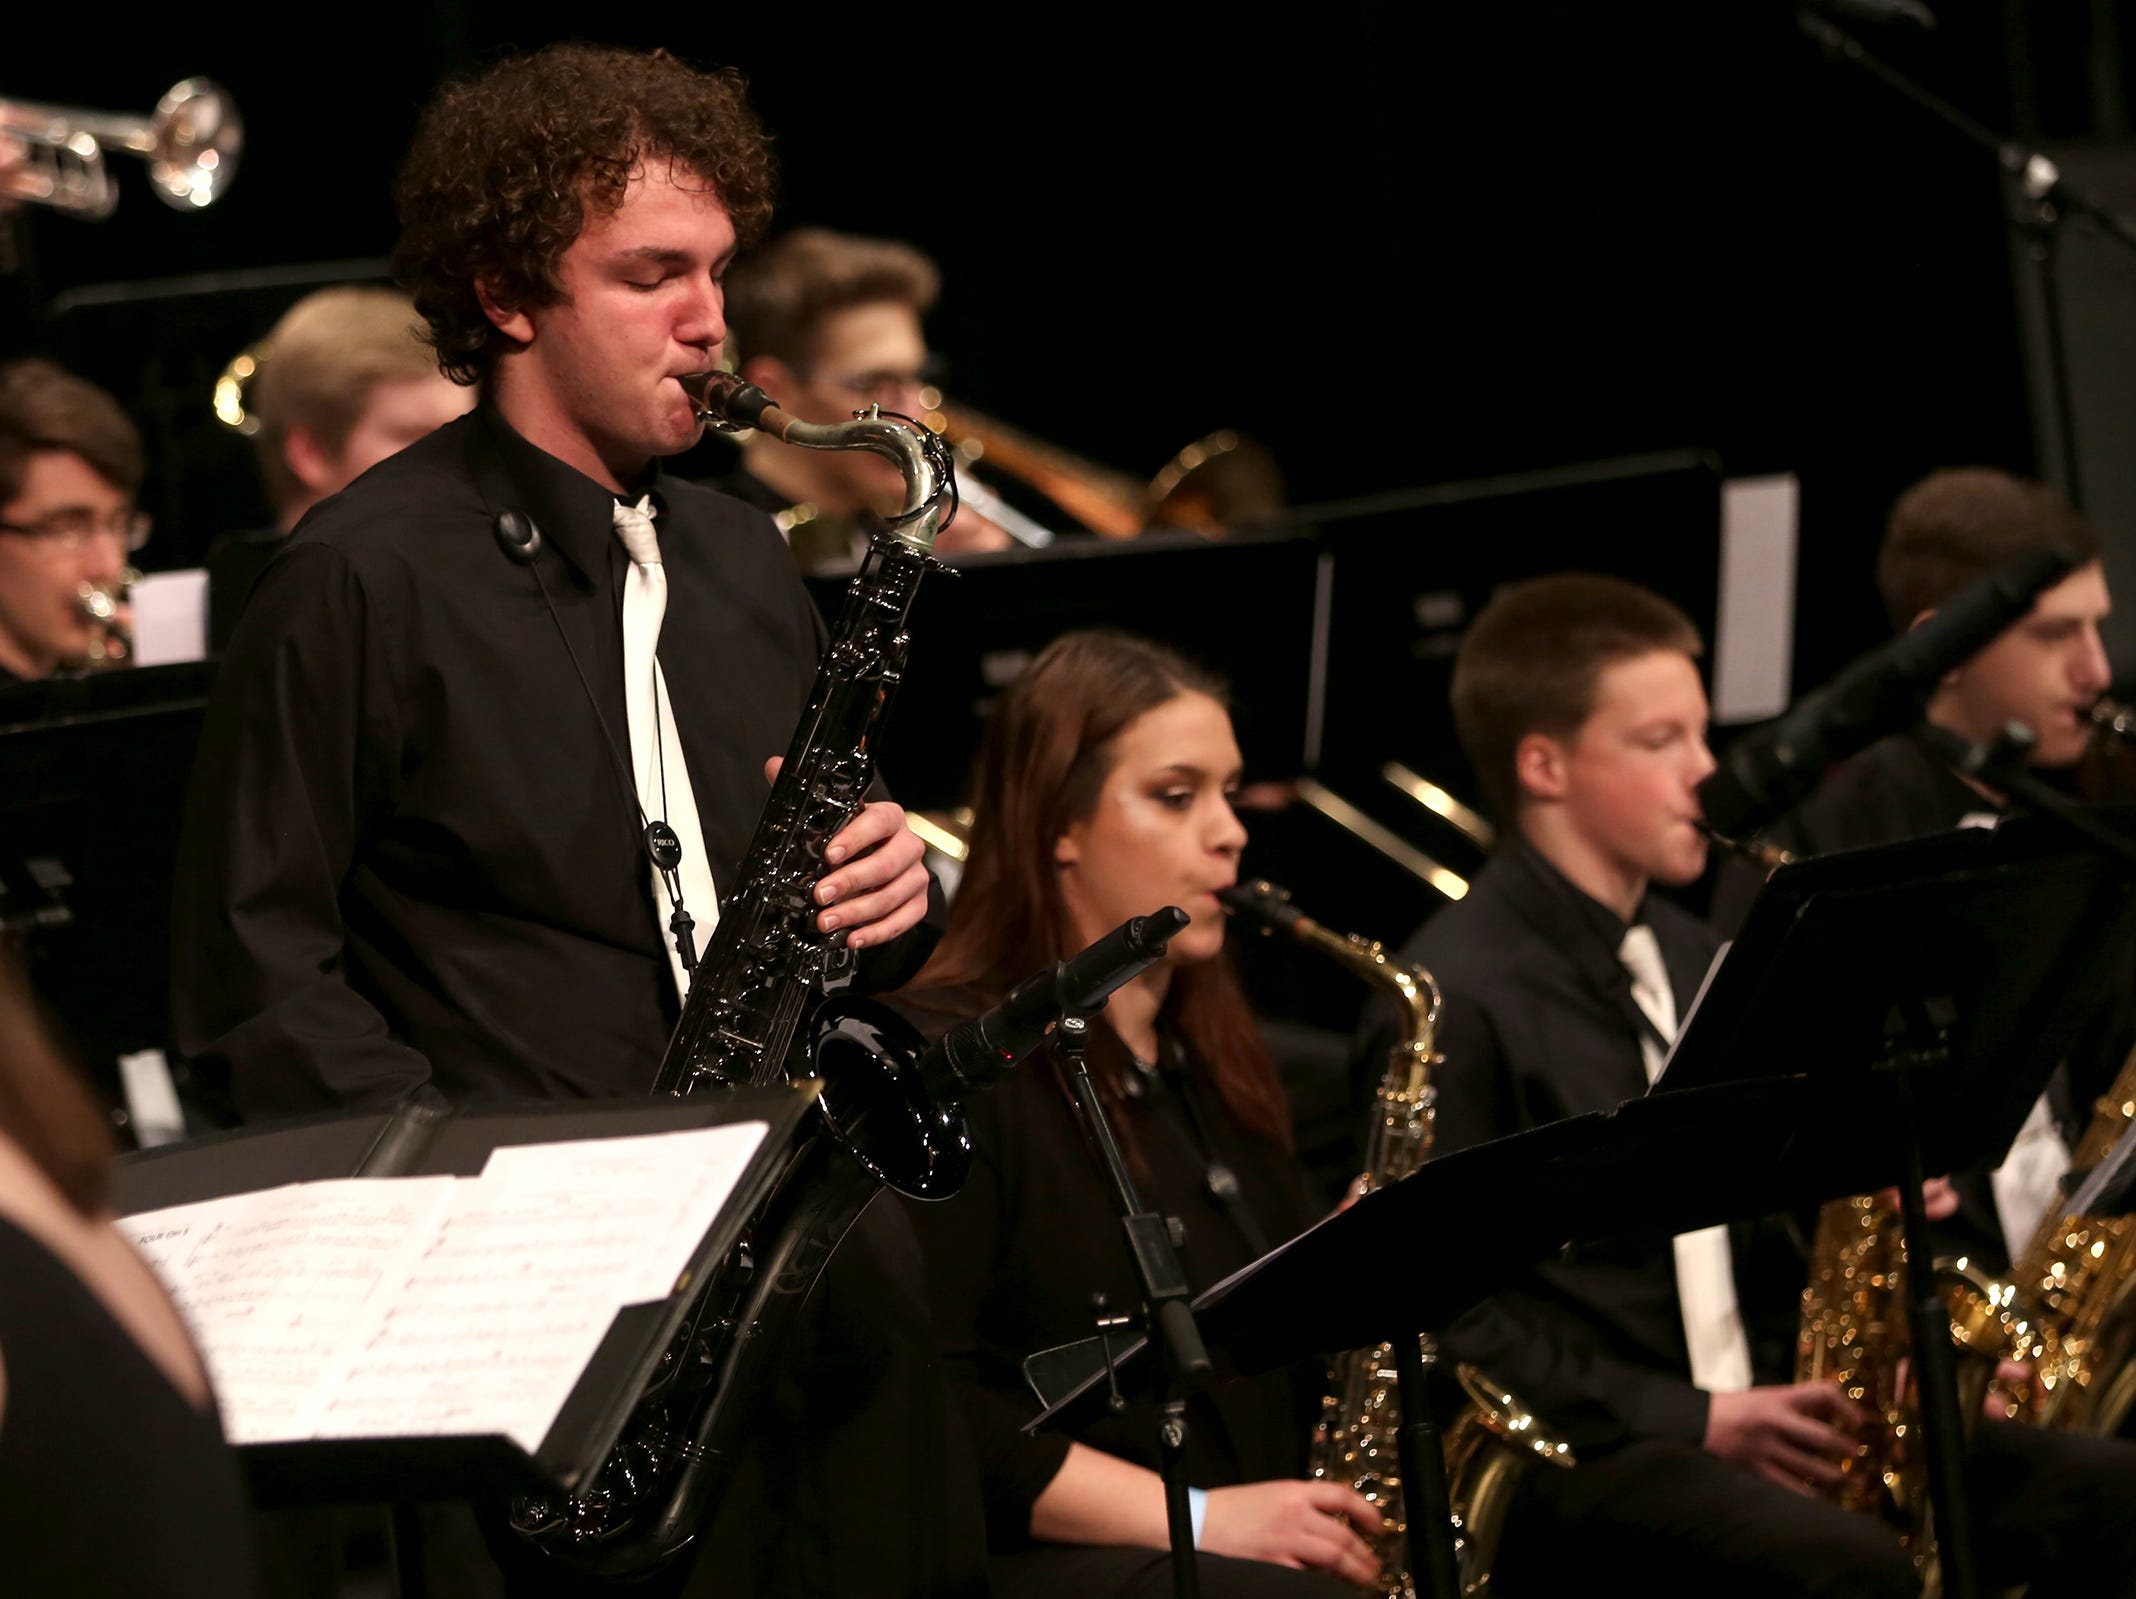 North Salem High School's jazz band performs at the annual West Salem Jazz Festival at West Salem High School on Saturday, Feb. 9, 2019.